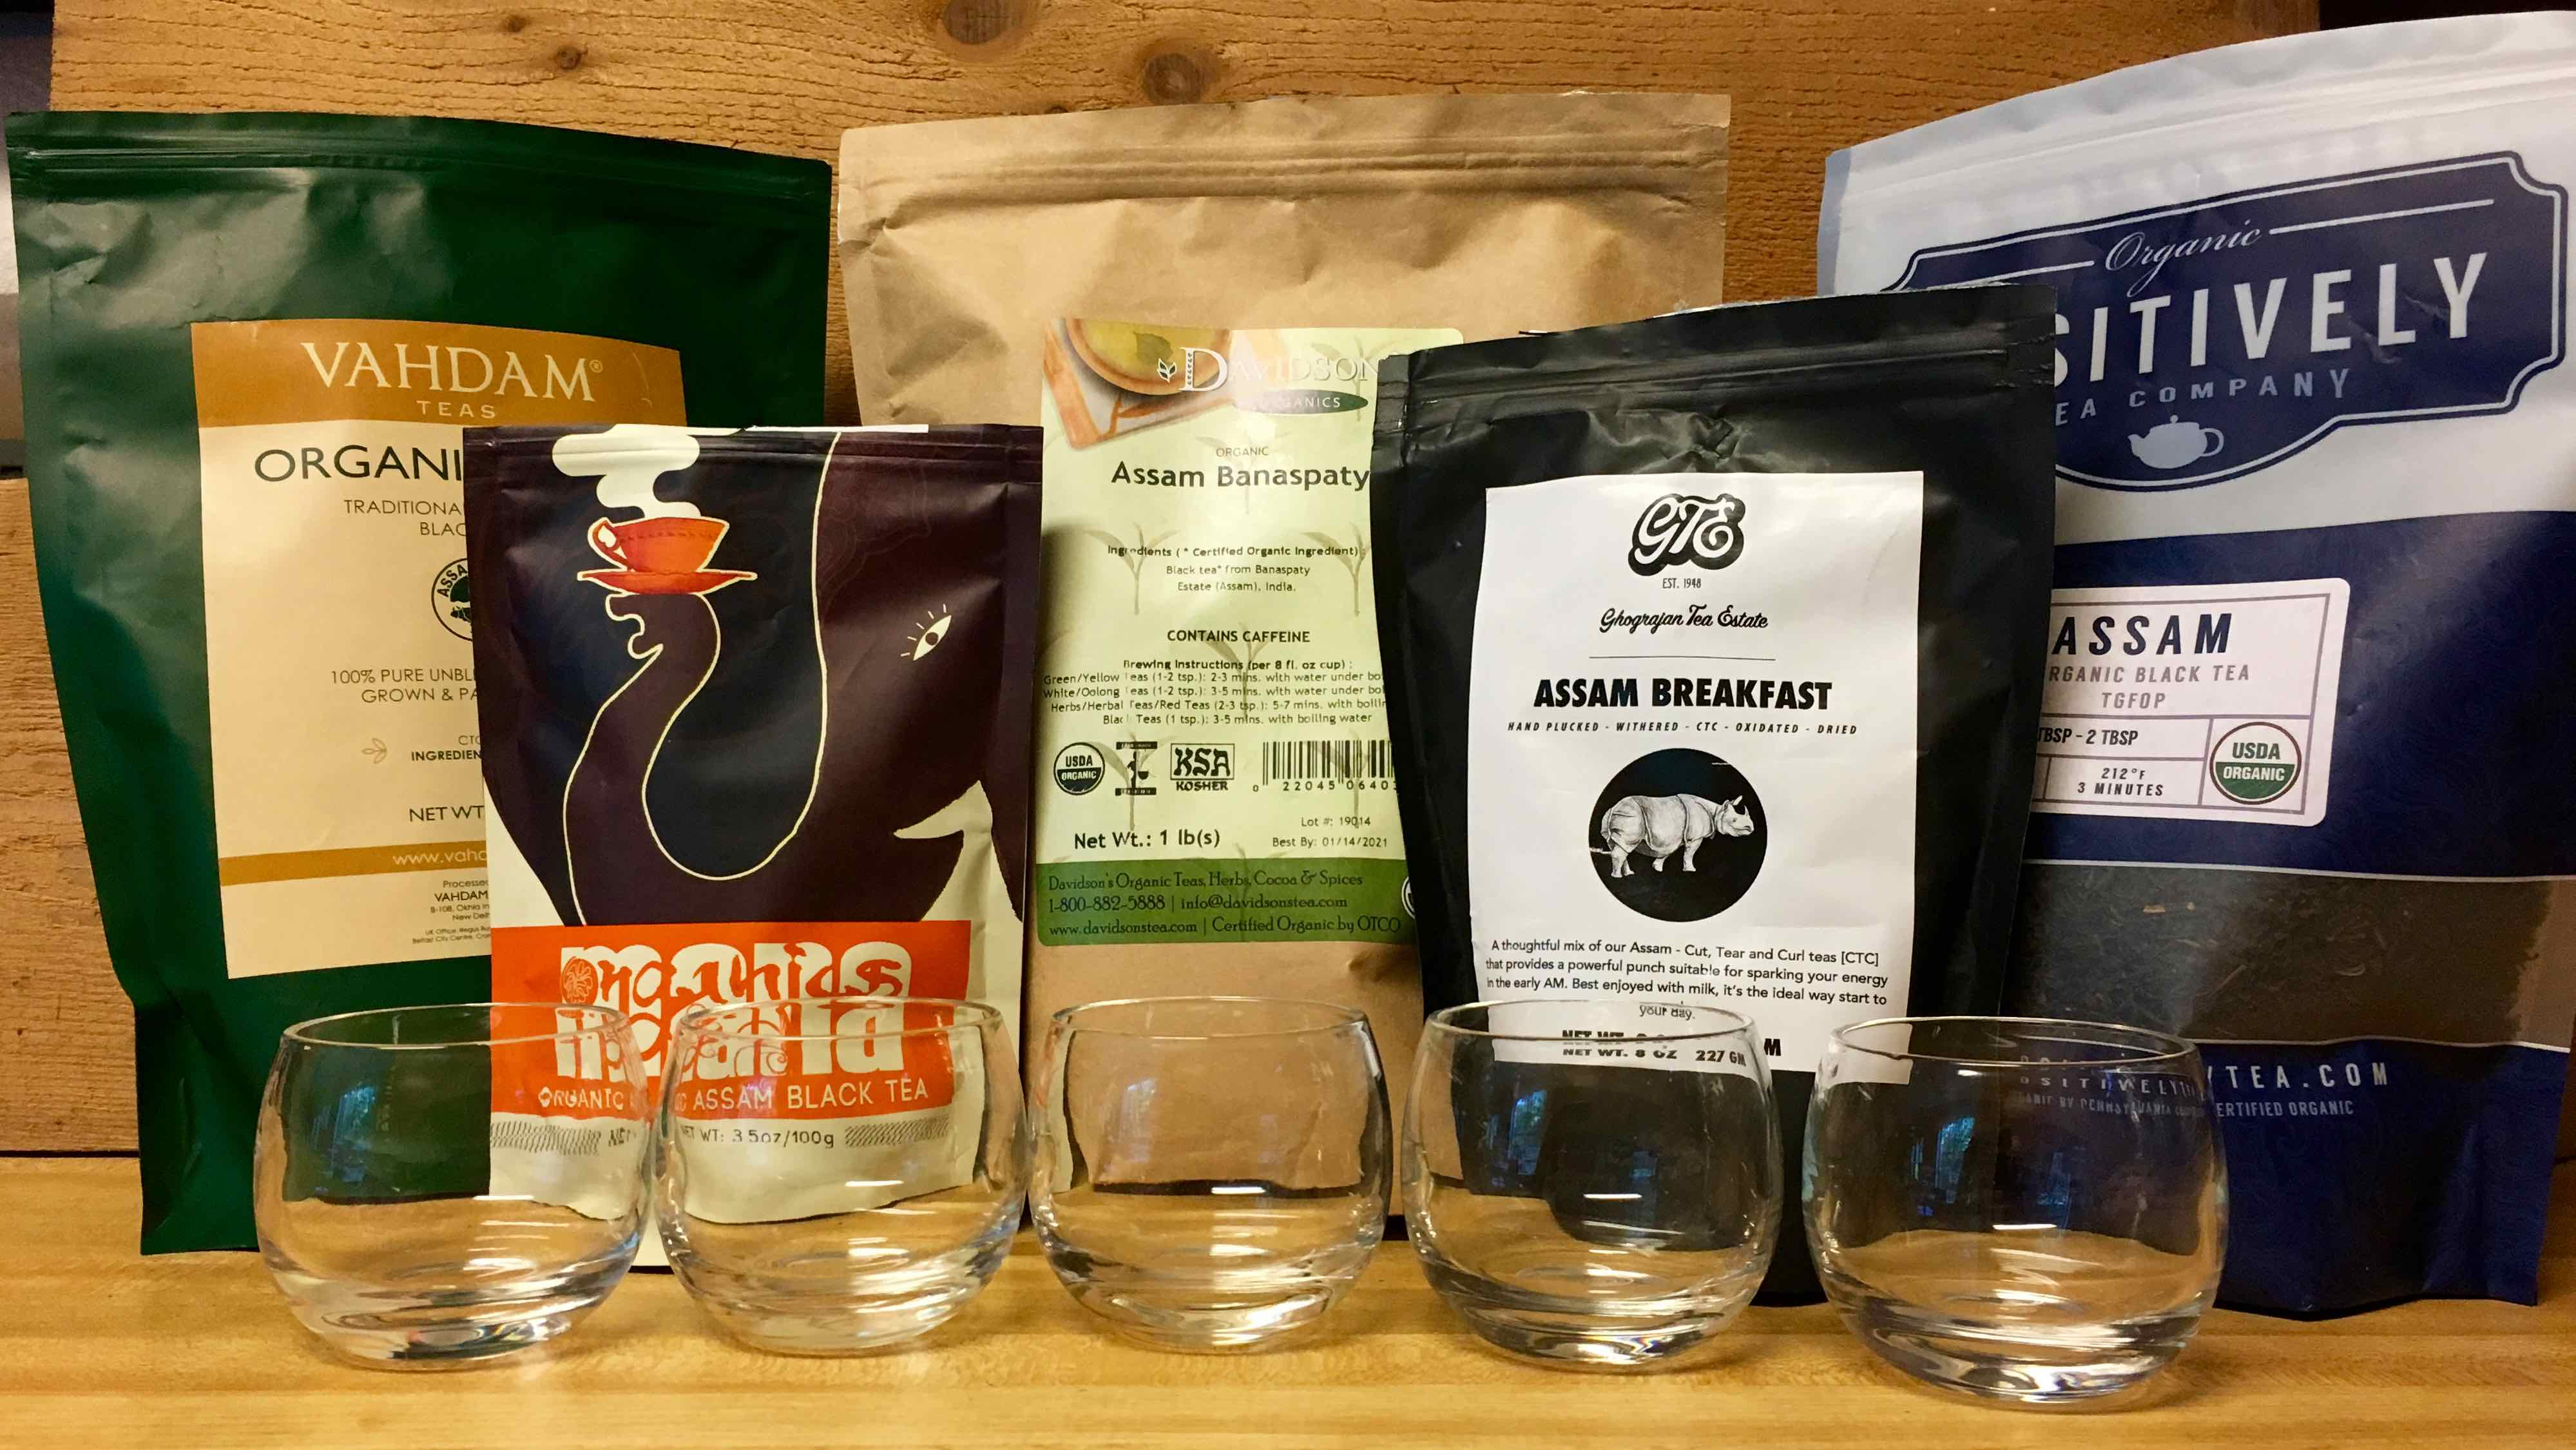 The five excellent Assam teas reviewed in this post.